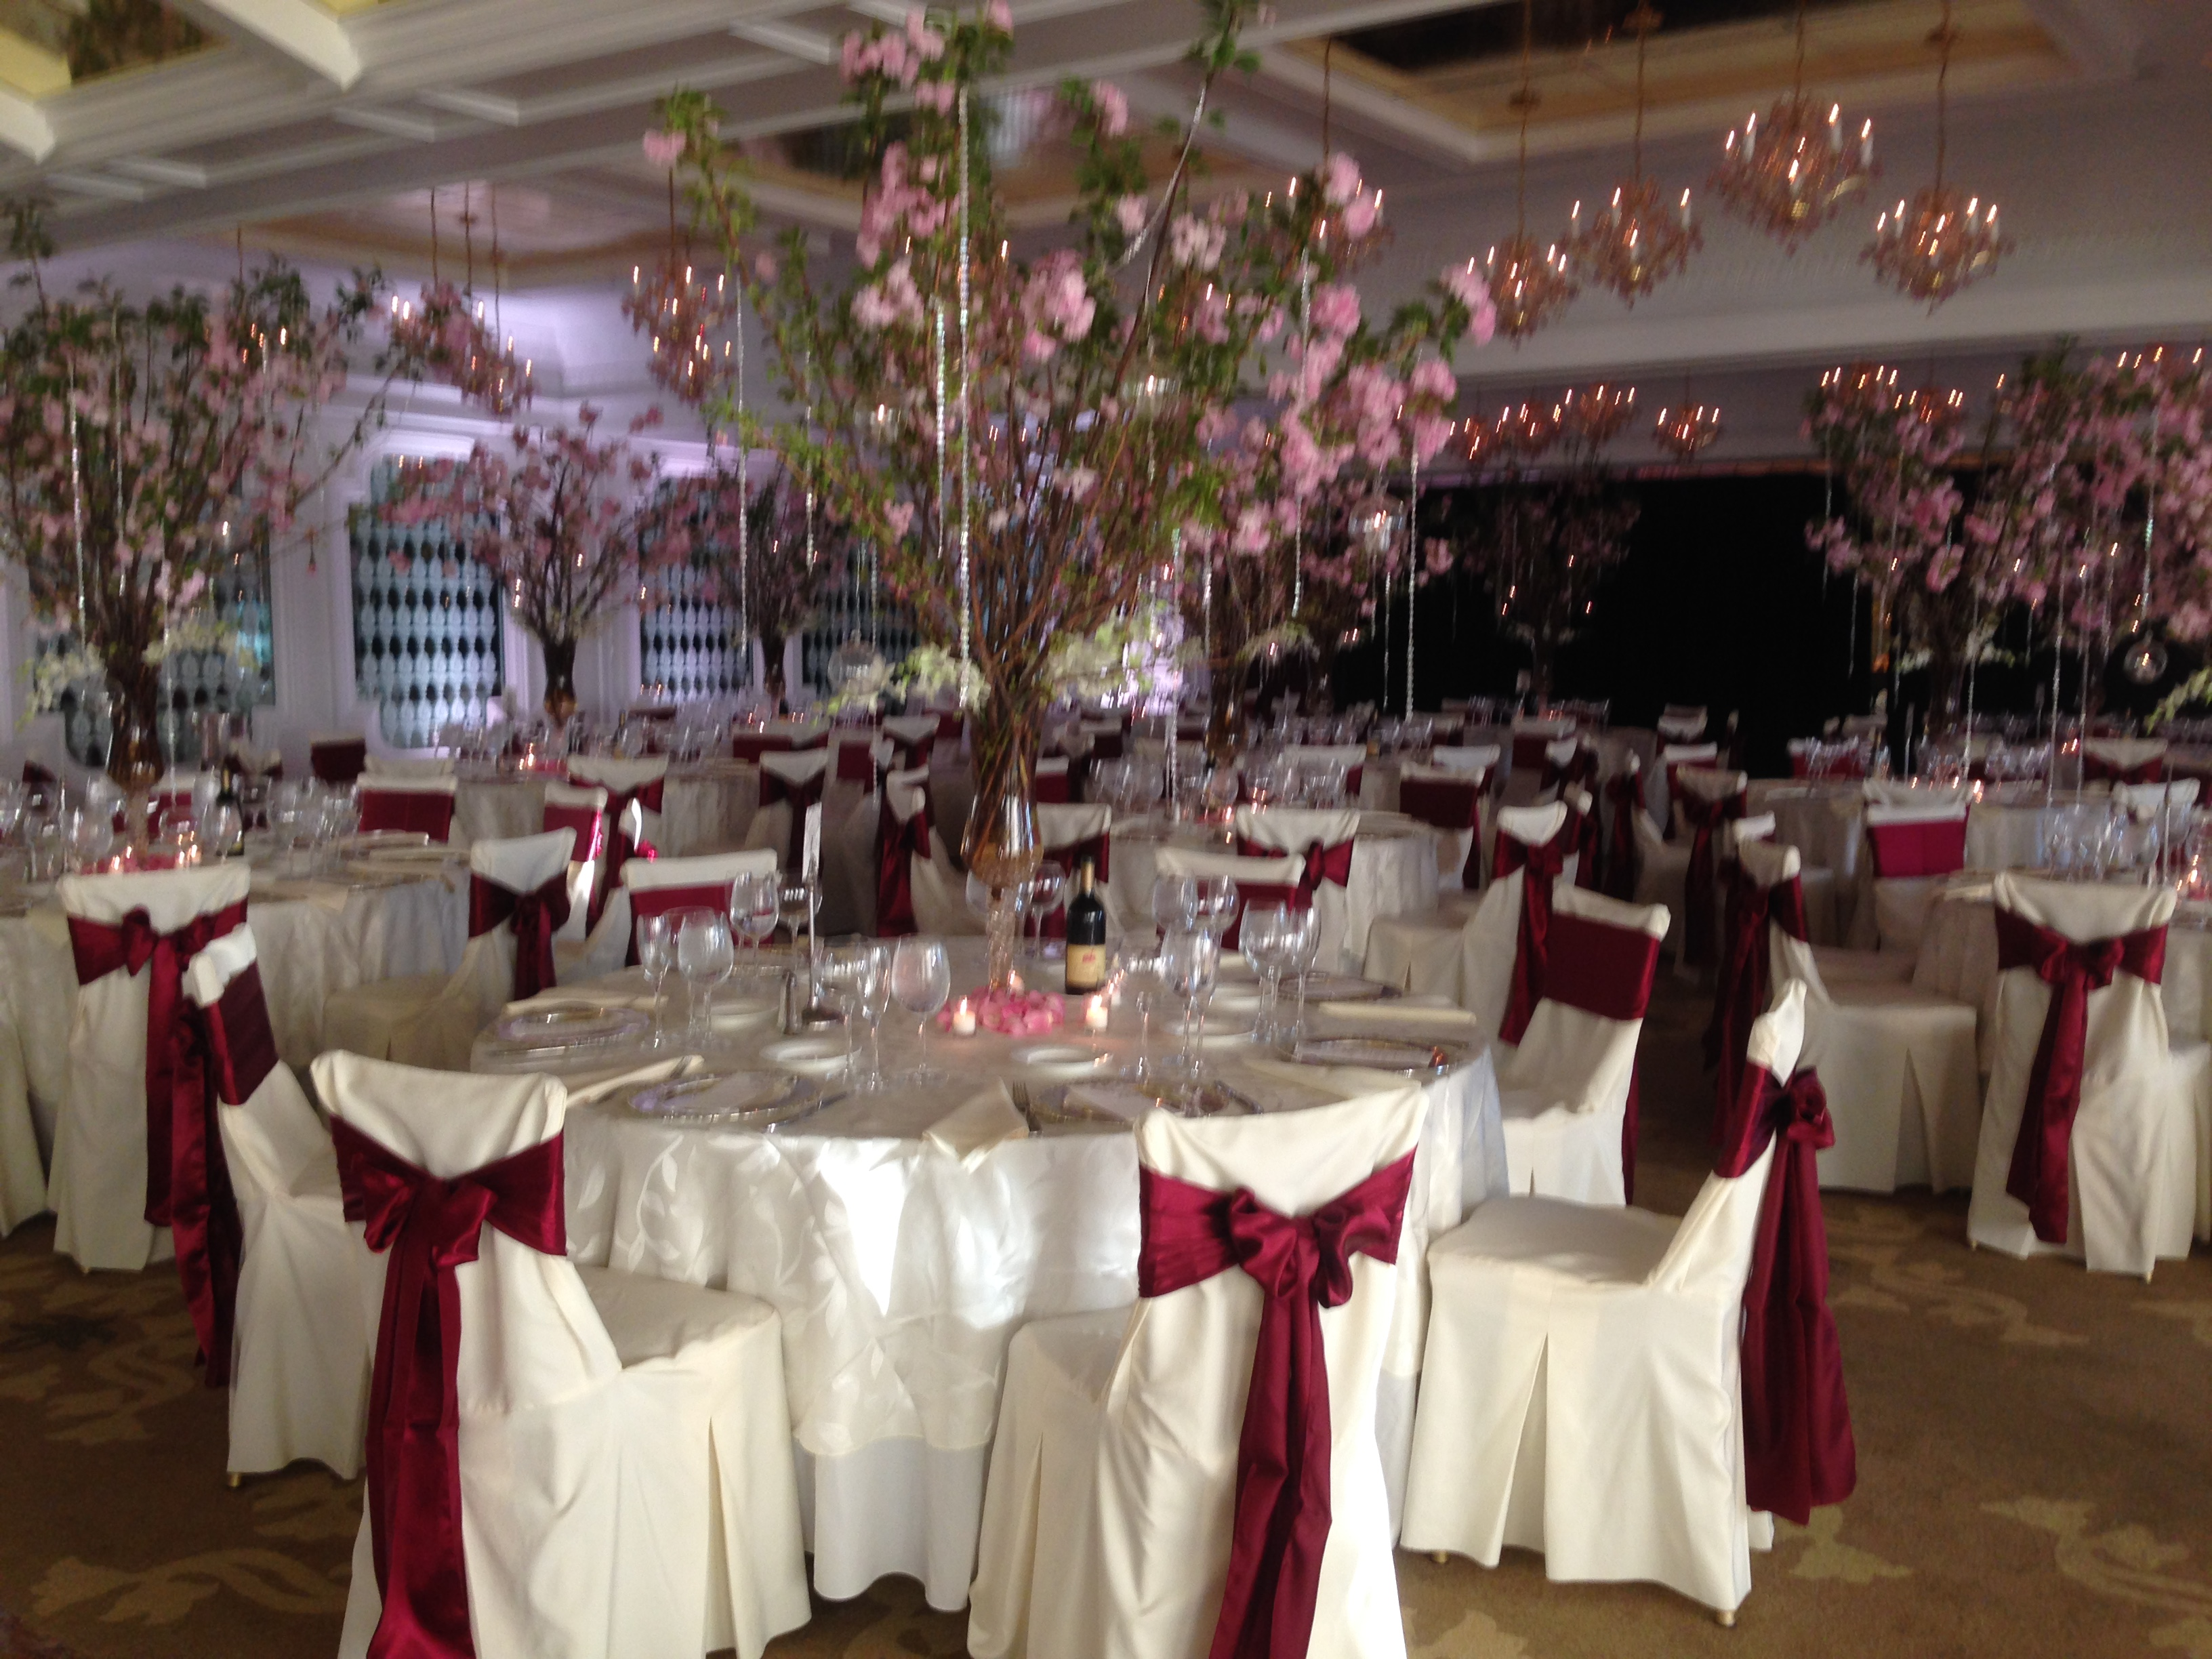 Enjoyable Gallery Royalty Rental Chair Covers Nj Event Linens Andrewgaddart Wooden Chair Designs For Living Room Andrewgaddartcom